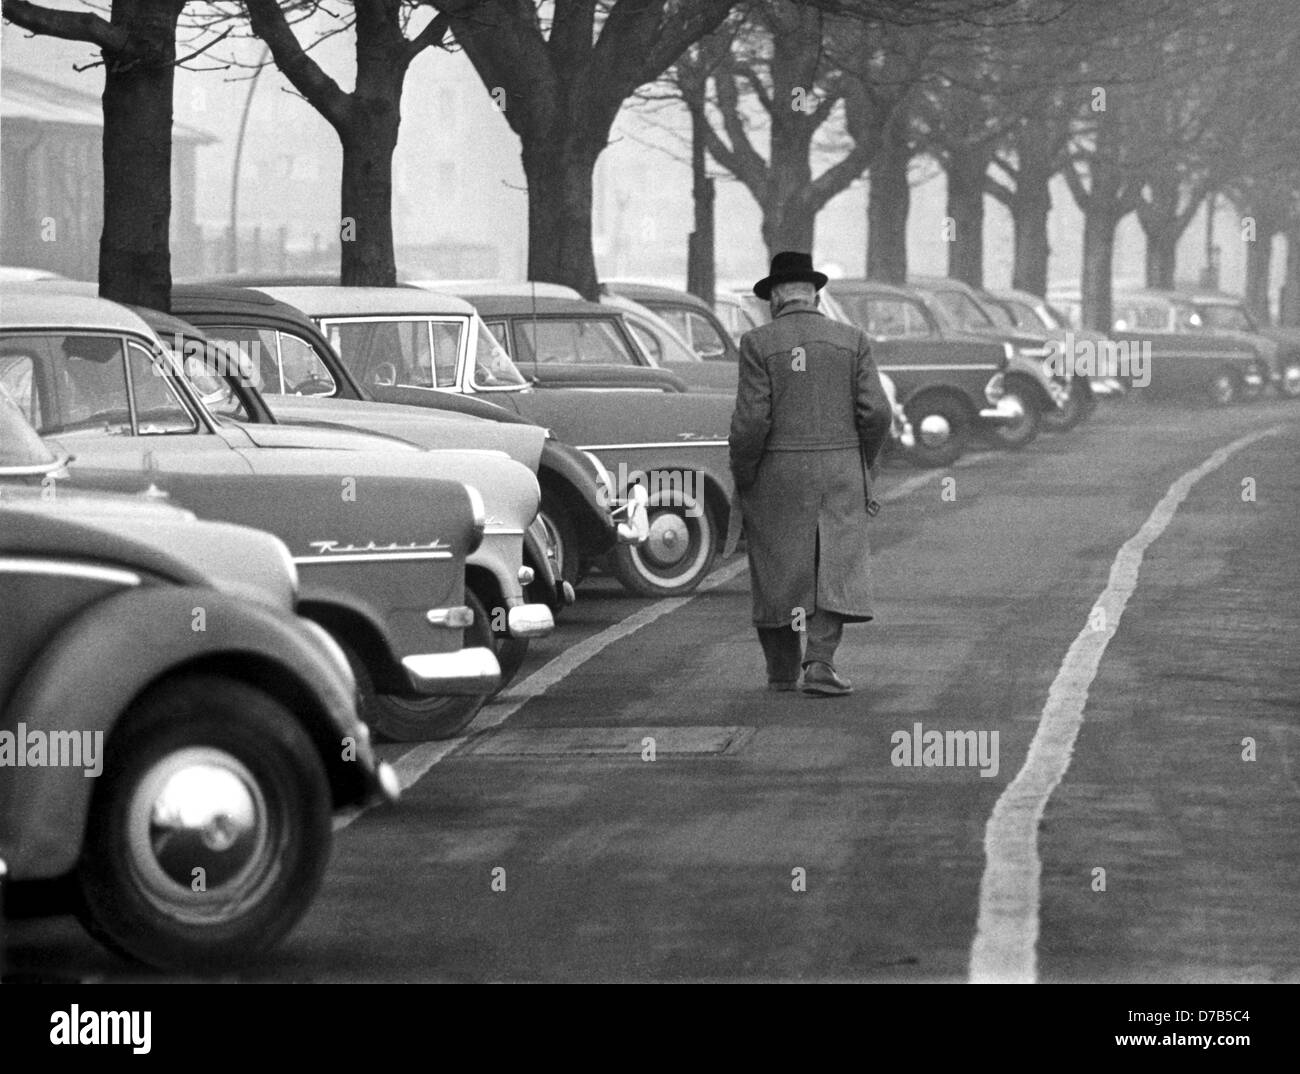 A pedestrian walks past a row of parked cars, photographed on the 20th of March in 1961 in a German city. Stock Photo